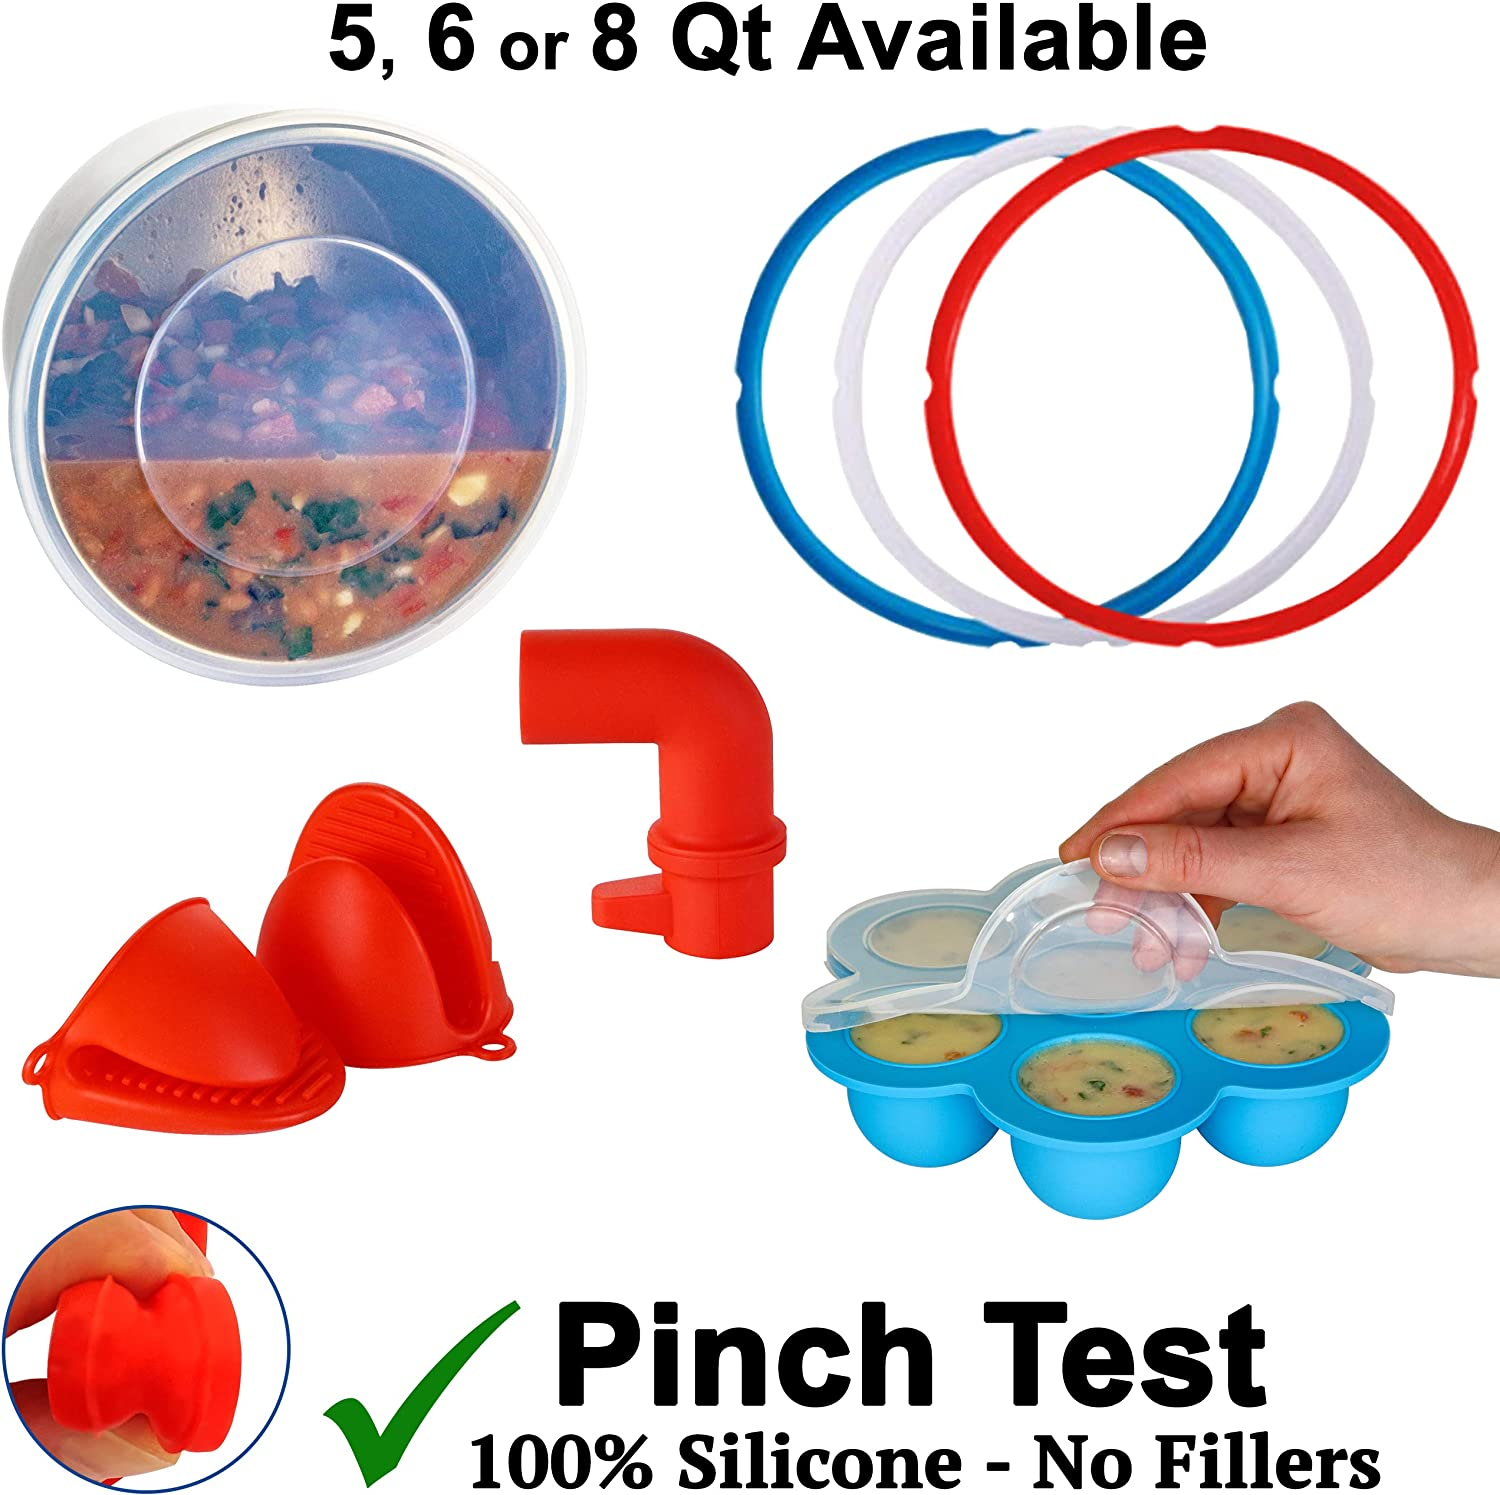 Silicone Accessories For Instant Pot 8 Quart: Silicone Lid, 3 Silicone Sealing Rings, Silicone Egg Bites Mold, Mitts, Steam Diverter - 100% AUTHENTIC SILICONE - BPA-FREE, PHTHALATE-FREE, PVC-FREE